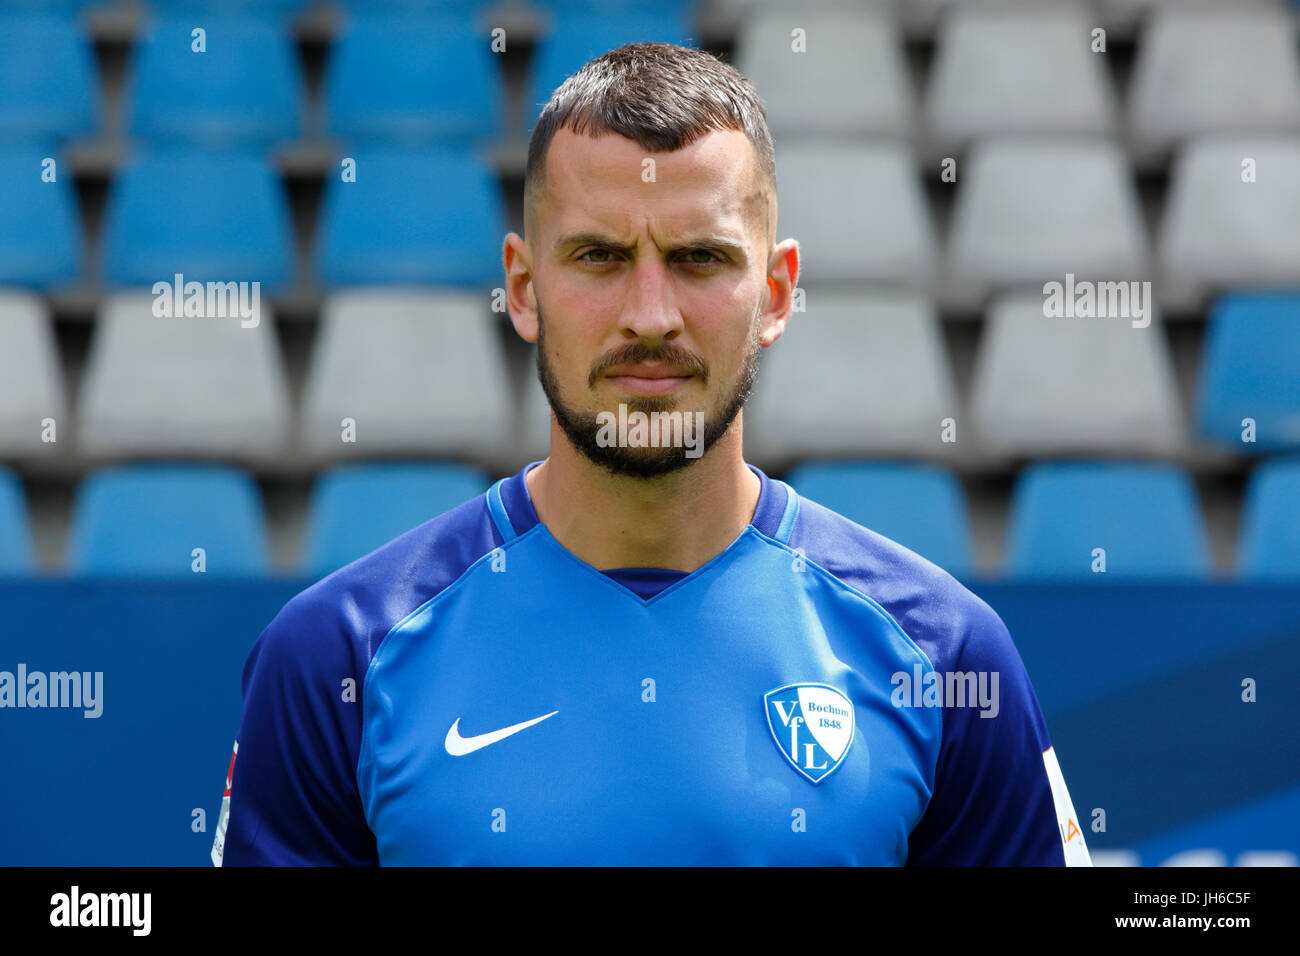 football, 2. Bundesliga, 2017/2018, VfL Bochum, team presentation for the game season, Patrick Fabian - Stock Image